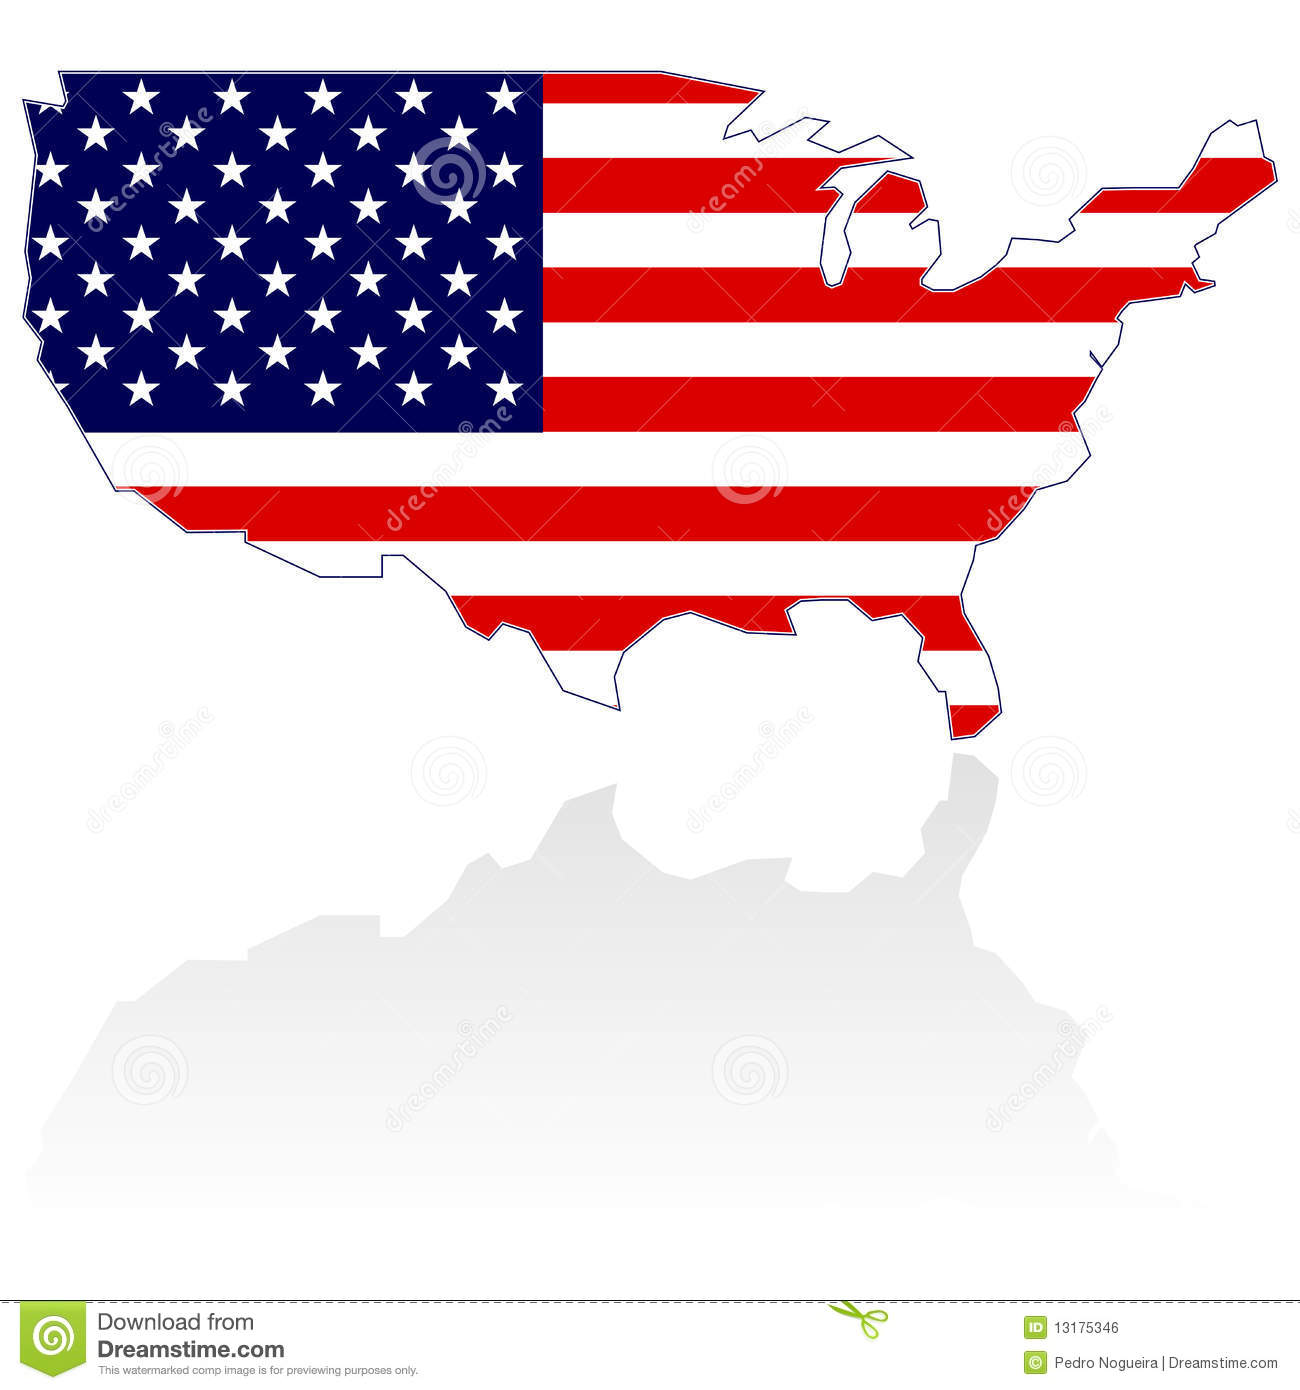 Us map flag clipart vector black and white library United States Map And Flag Royalty Free Stock Image - Image: 13175346 vector black and white library